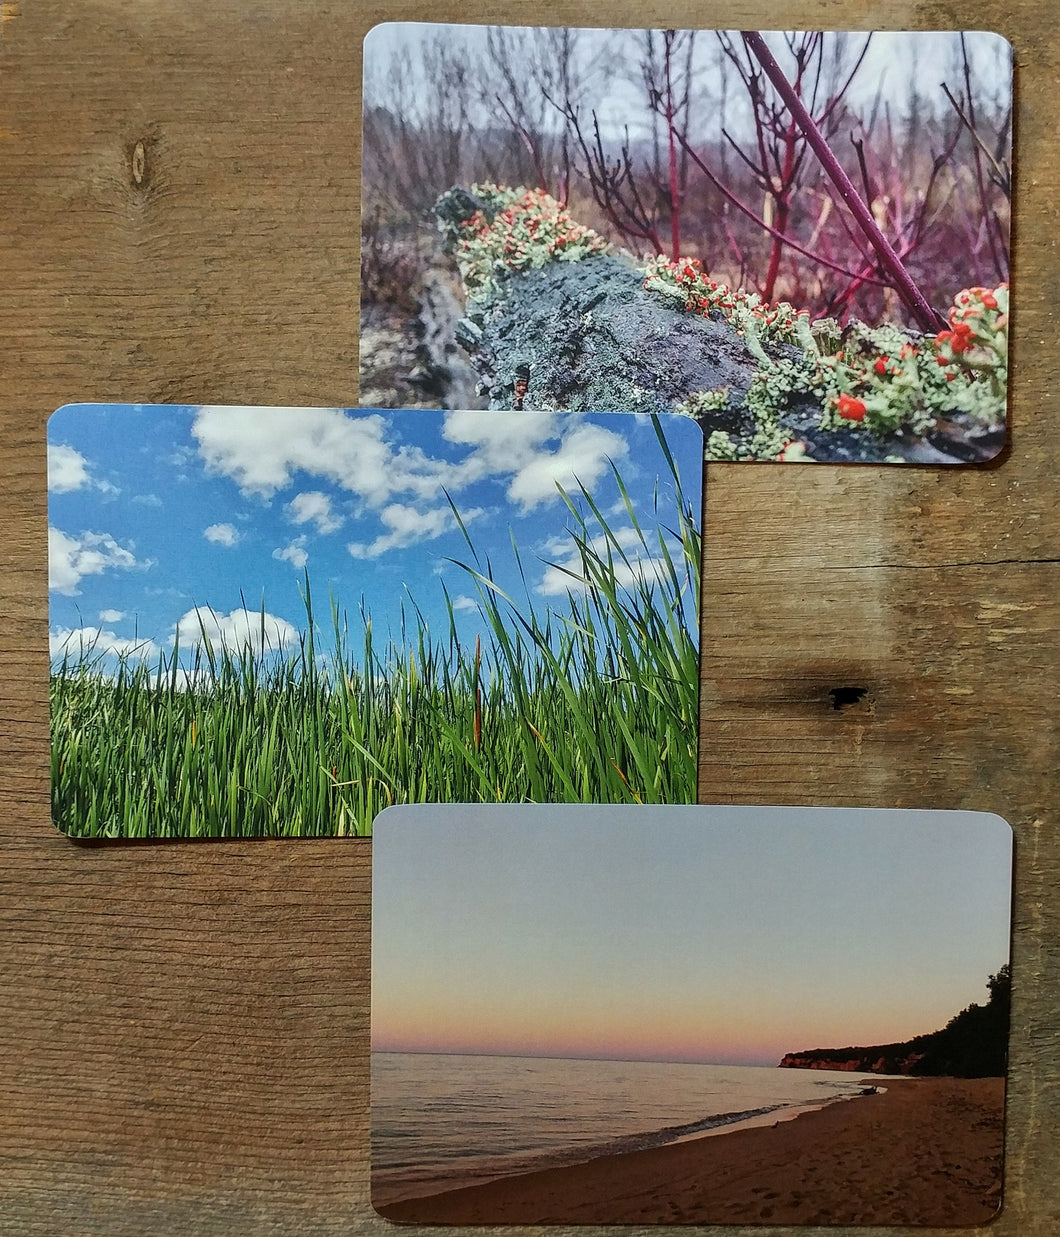 michigan inspired postcards, michigan adventures postal gifts, set of 3 postcards